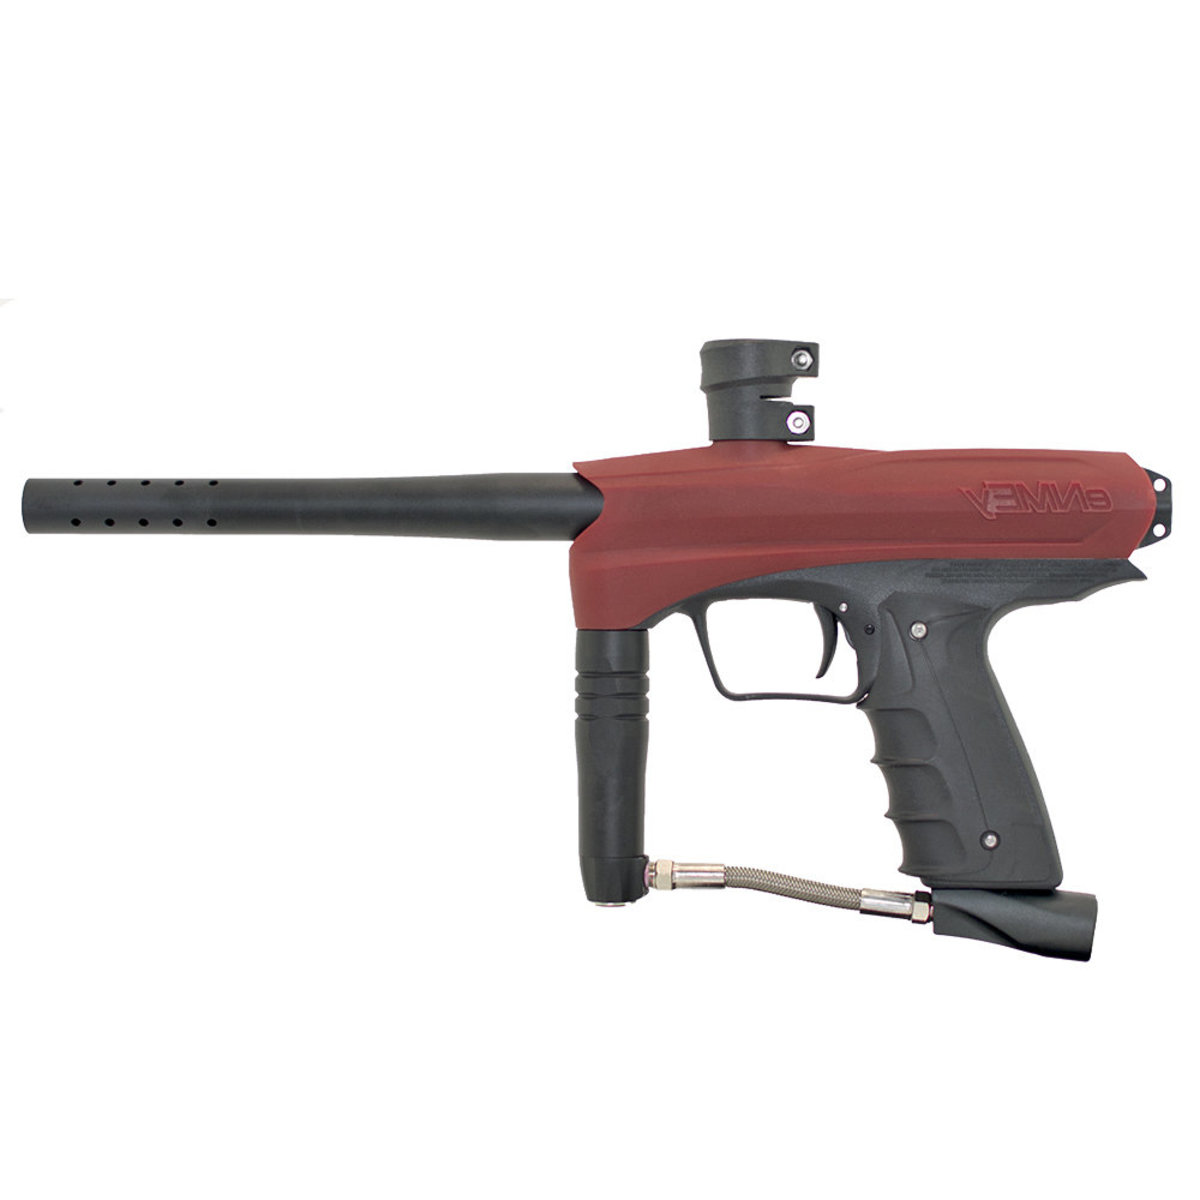 View larger image of GoG eNMEy Paintball Gun